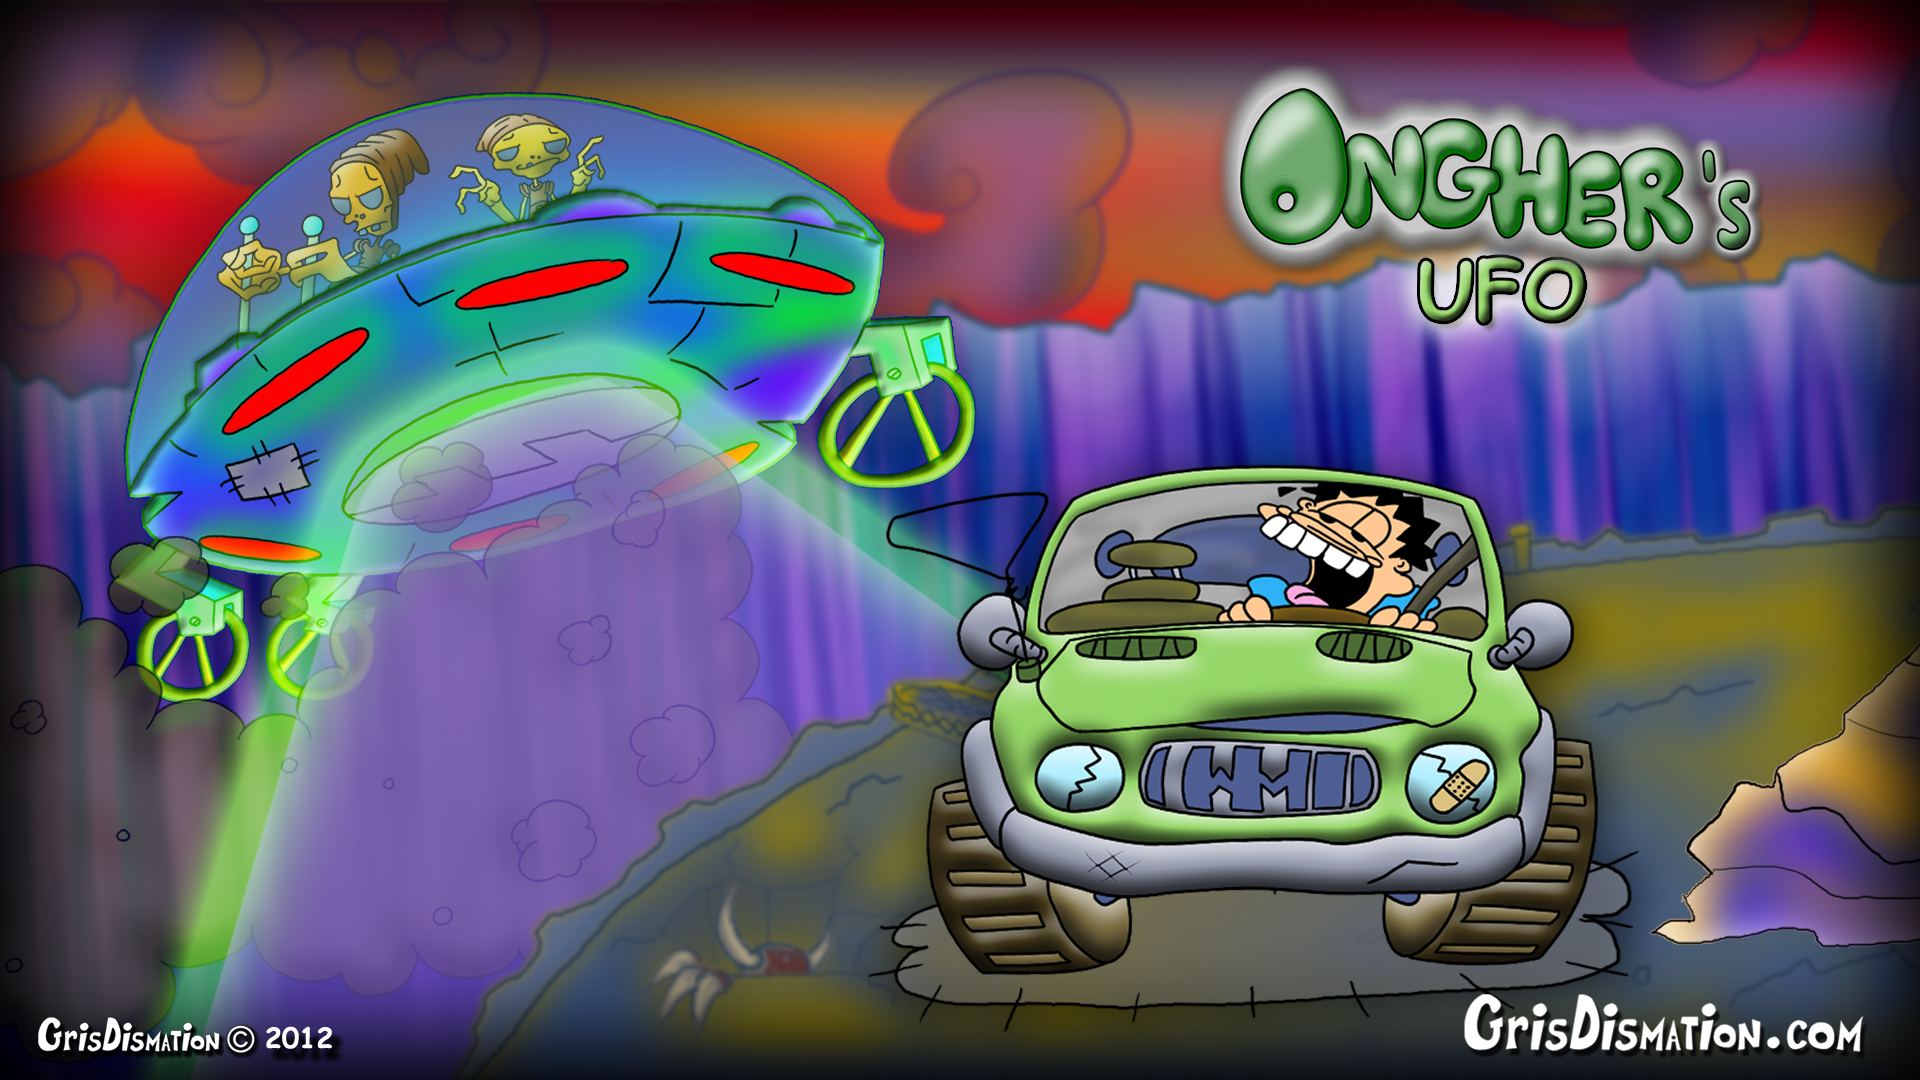 Ongher's UFO